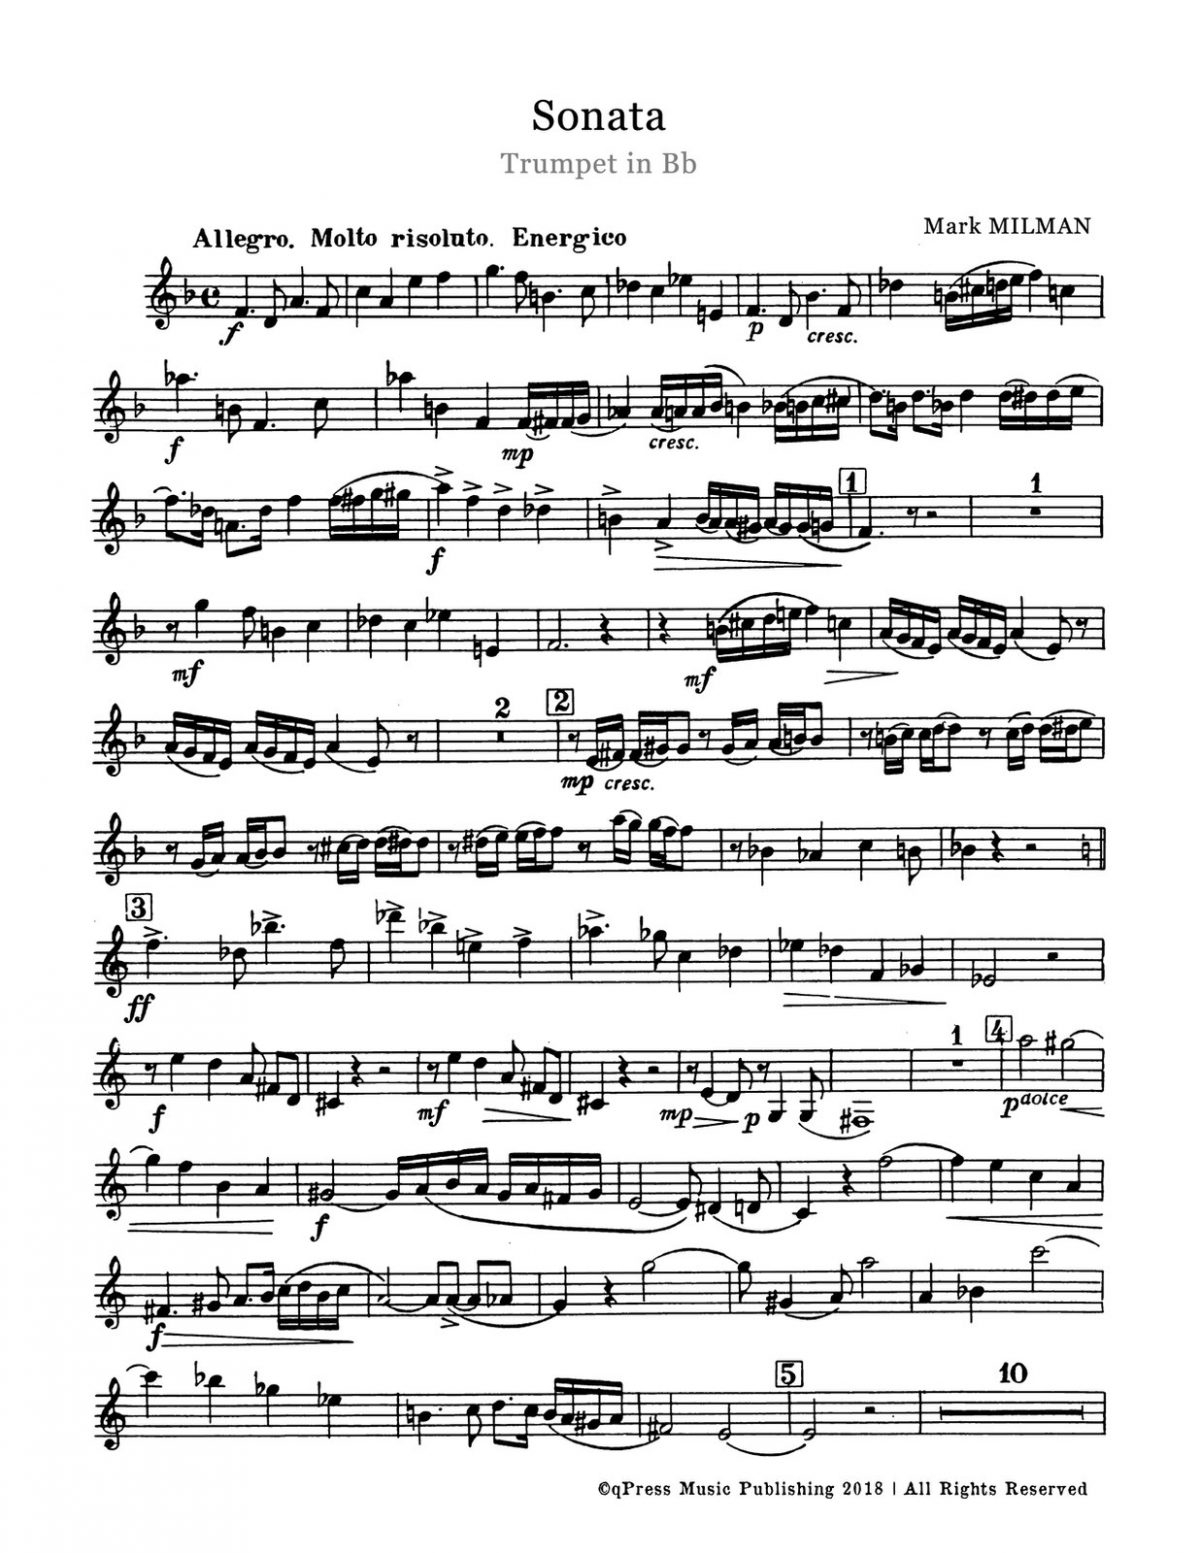 Milman, Sonata (Score and Part)-p03